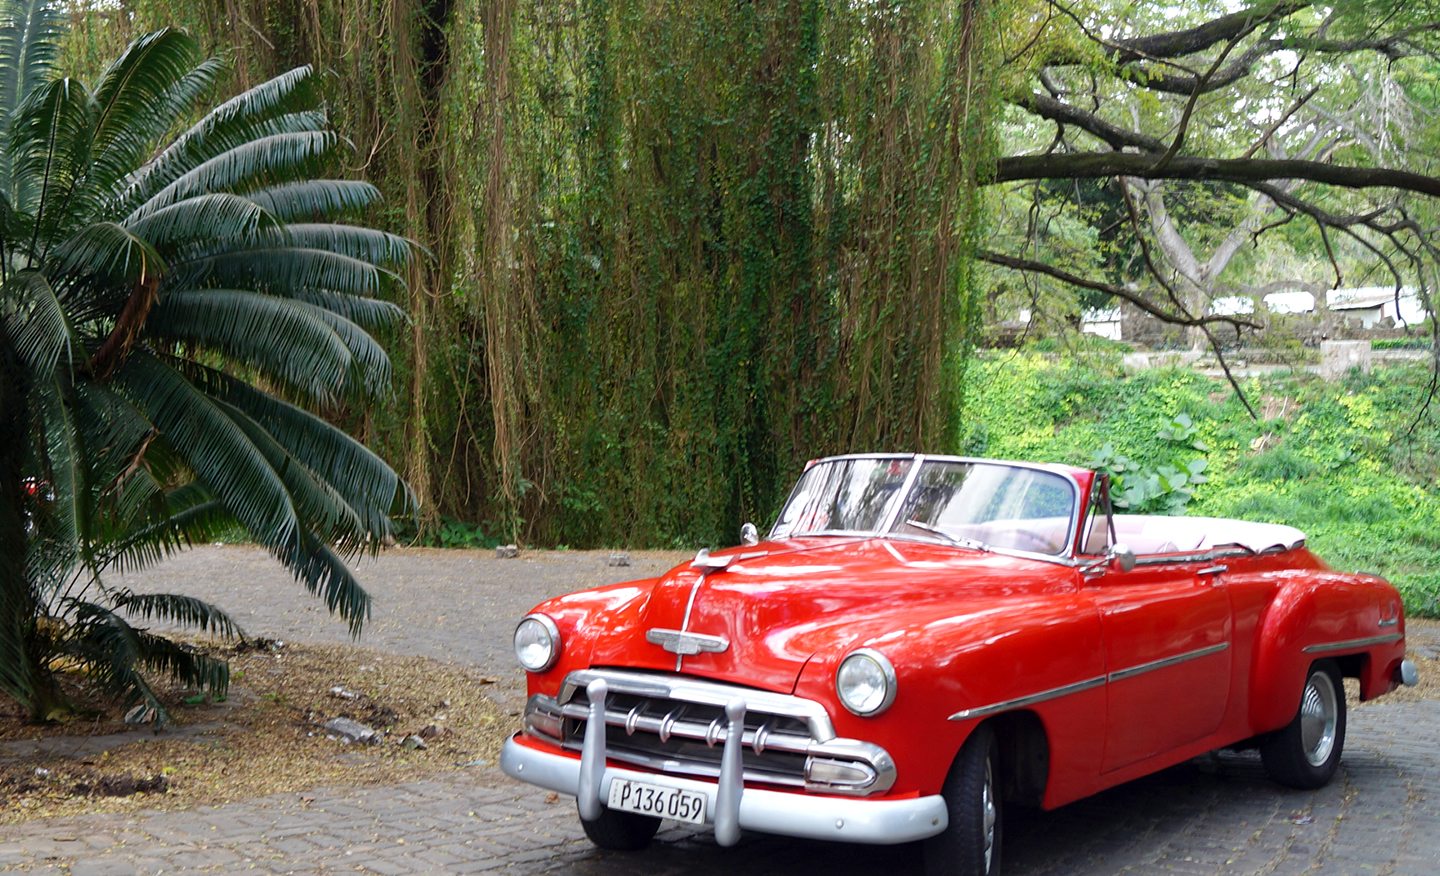 cuba old car with travel agency